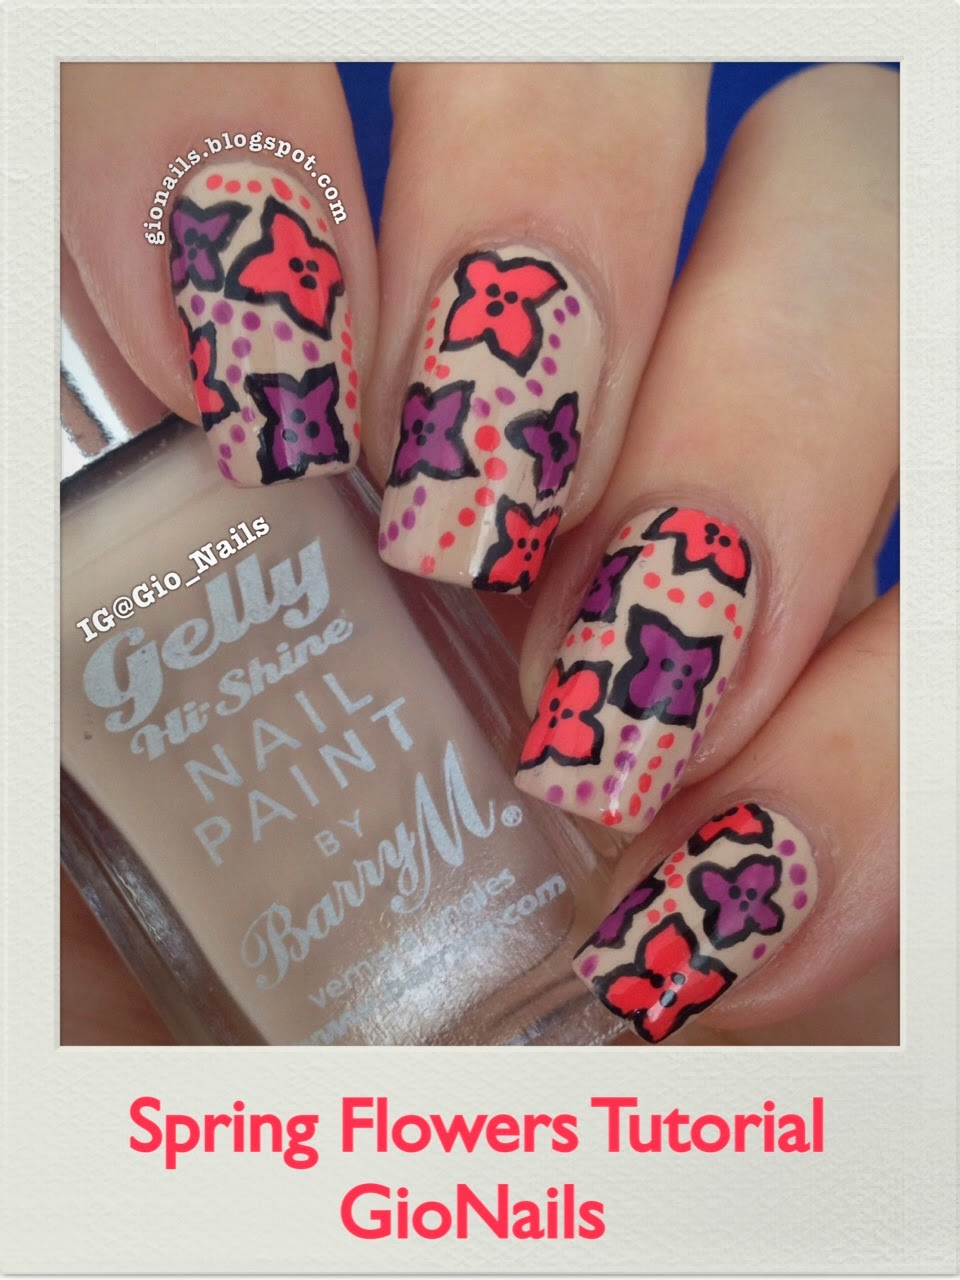 http://gionails.blogspot.be/2014/05/spring-flowers-tutorial.html